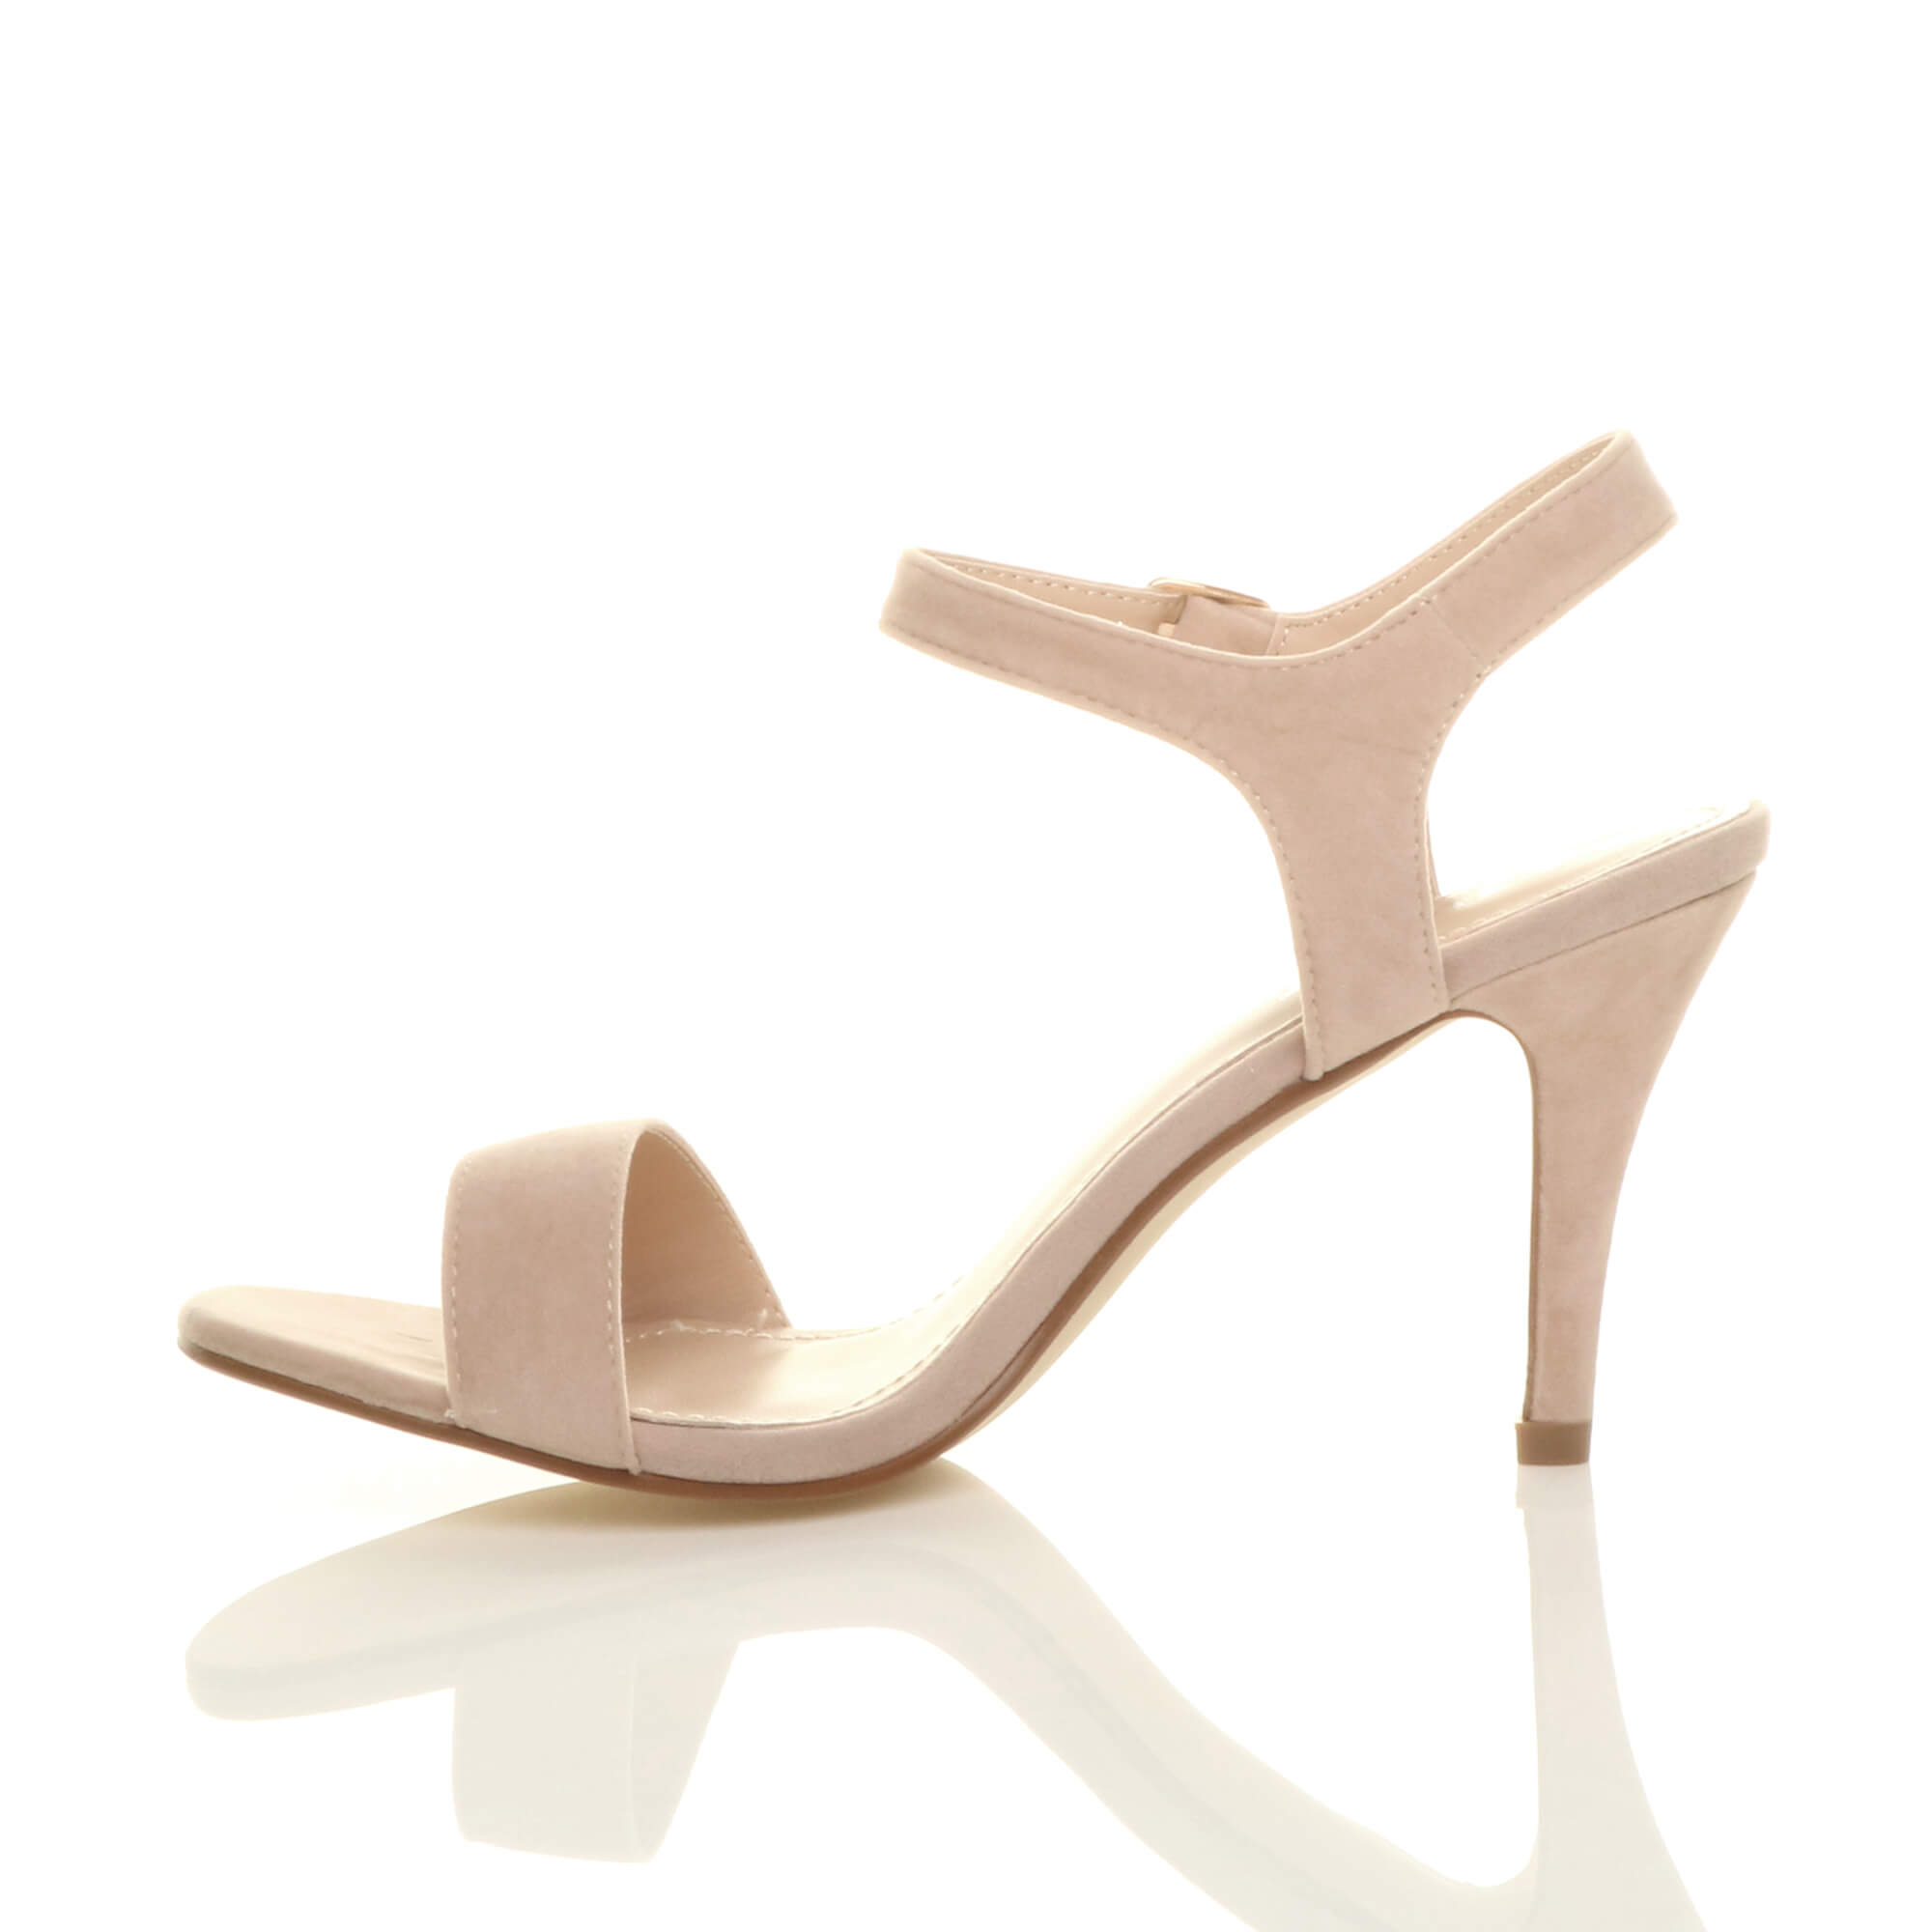 WOMENS-LADIES-HIGH-HEEL-BUCKLE-STRAPPY-BASIC-BARELY-THERE-SANDALS-SHOES-SIZE thumbnail 102